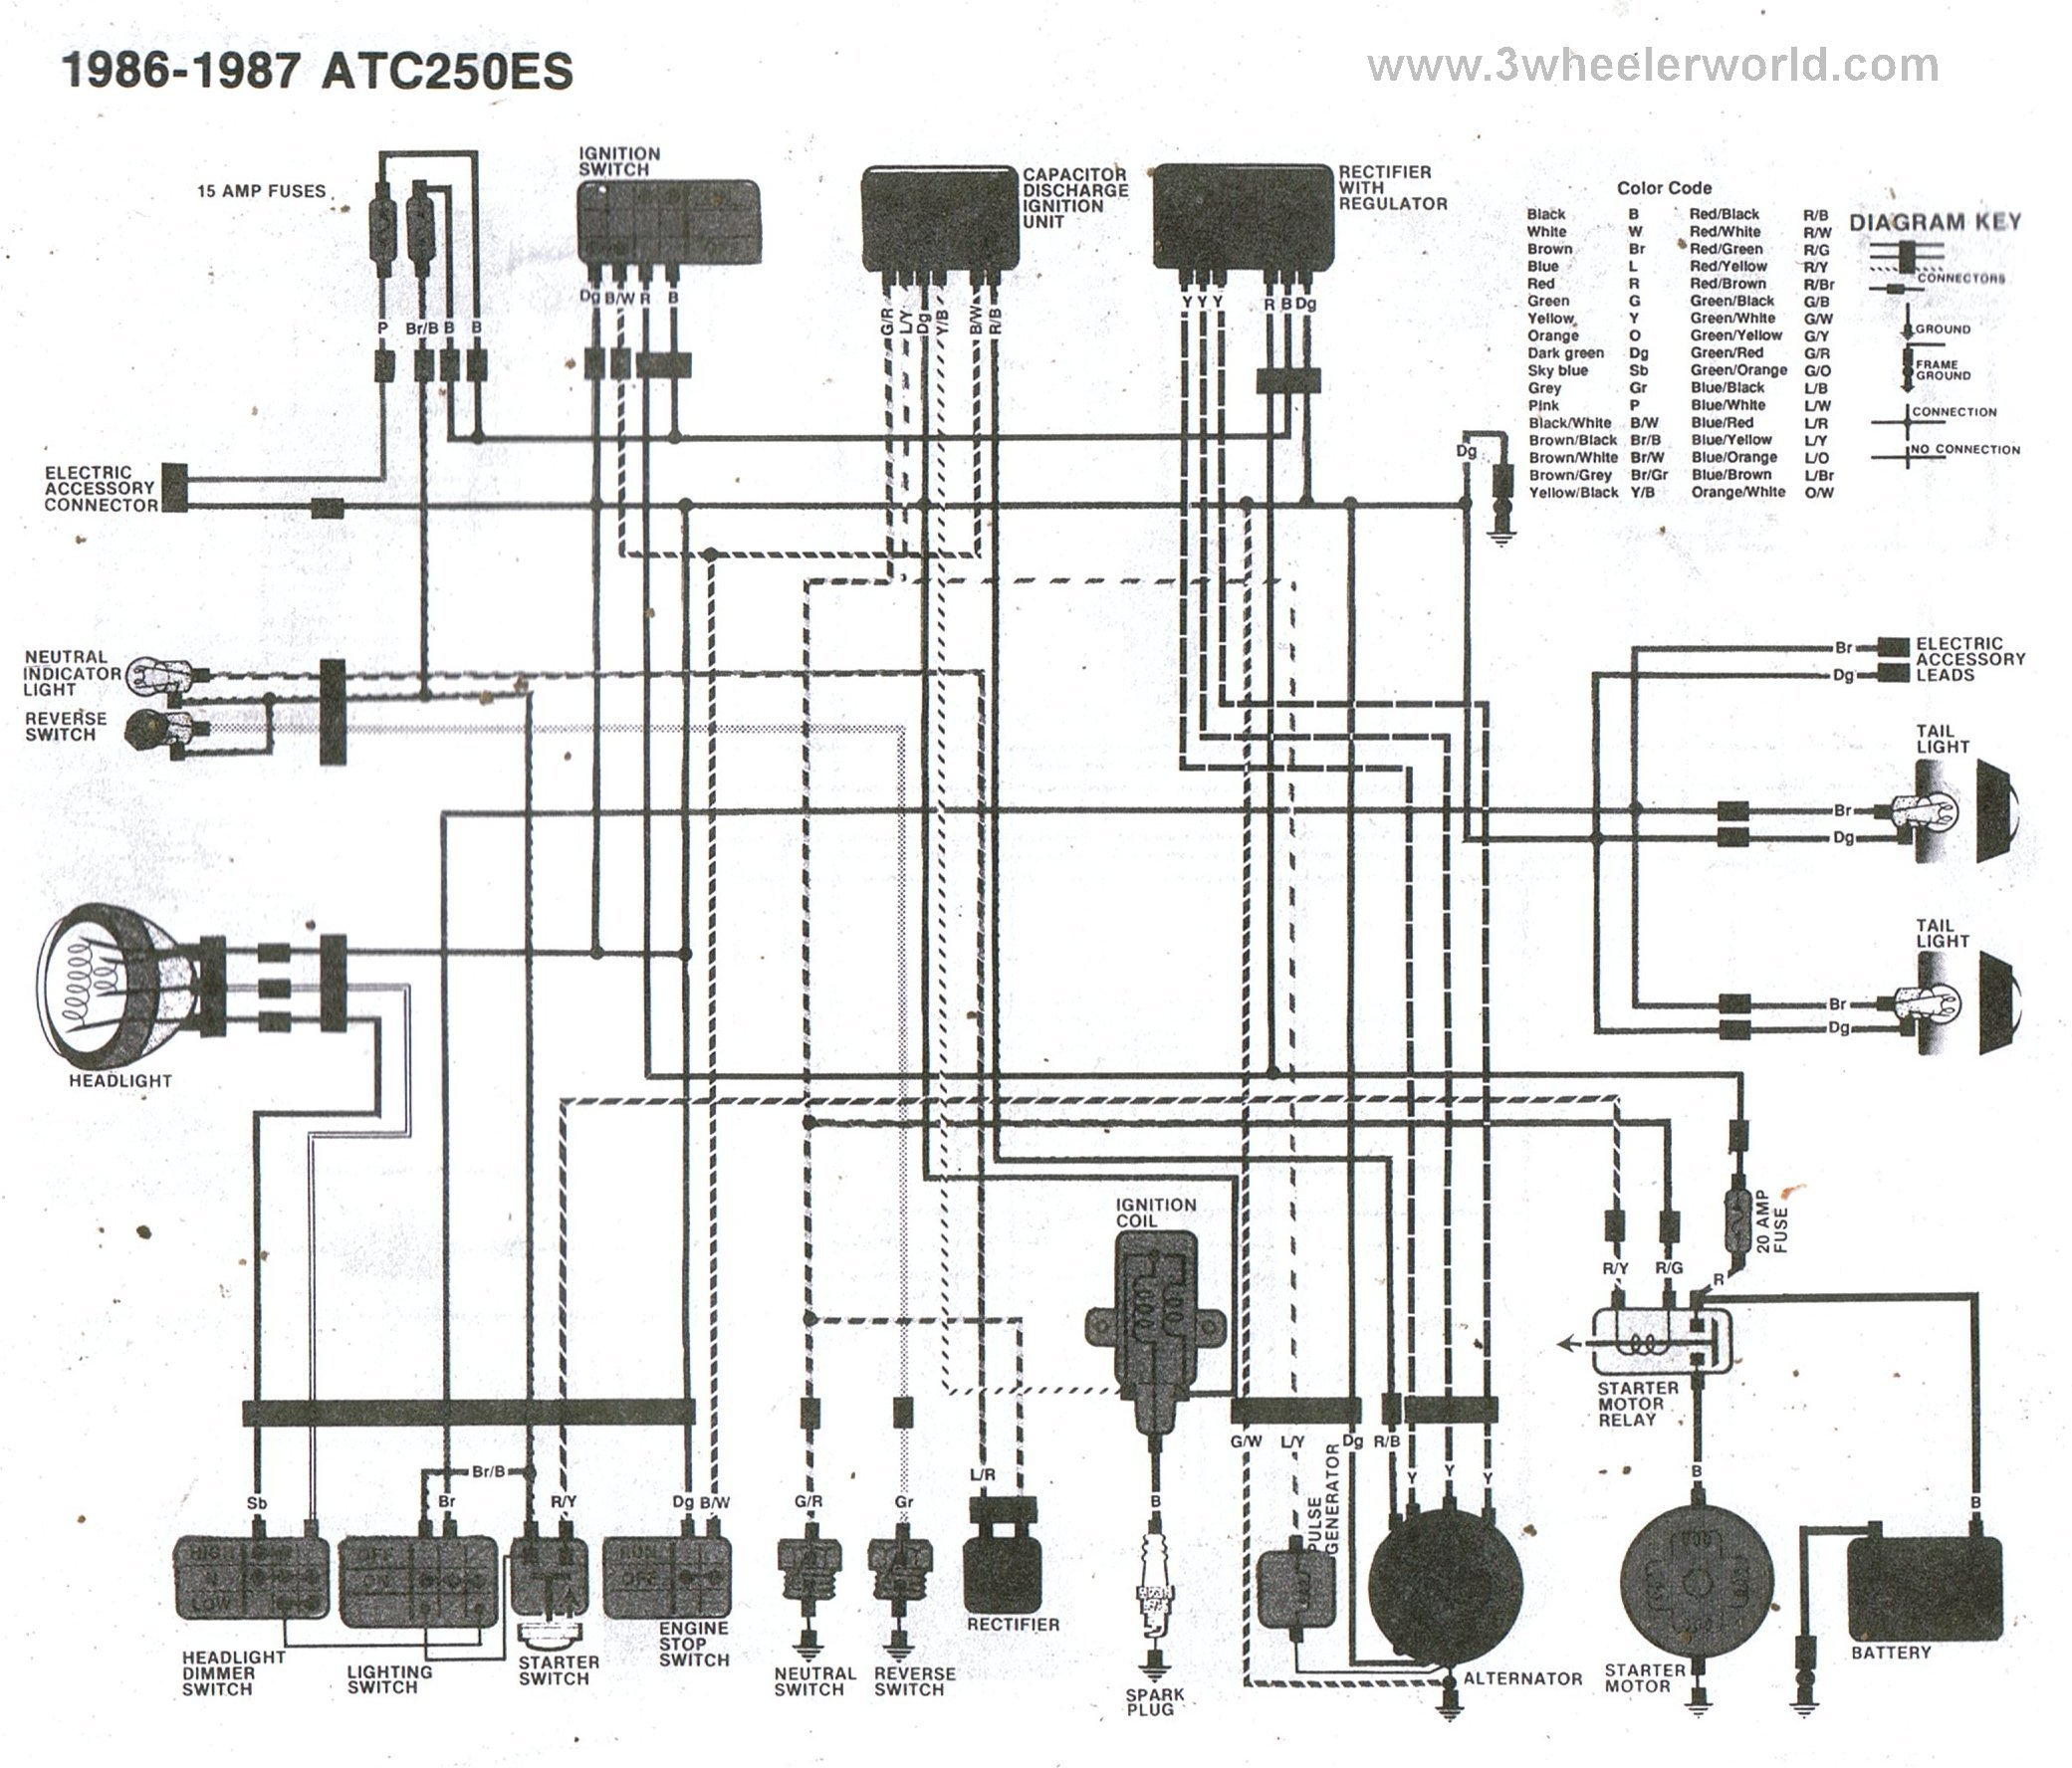 ATC250ESx86Thru87 3 wheeler world tech help honda wiring diagrams yamaha moto 4 250 wiring diagrams at beritabola.co